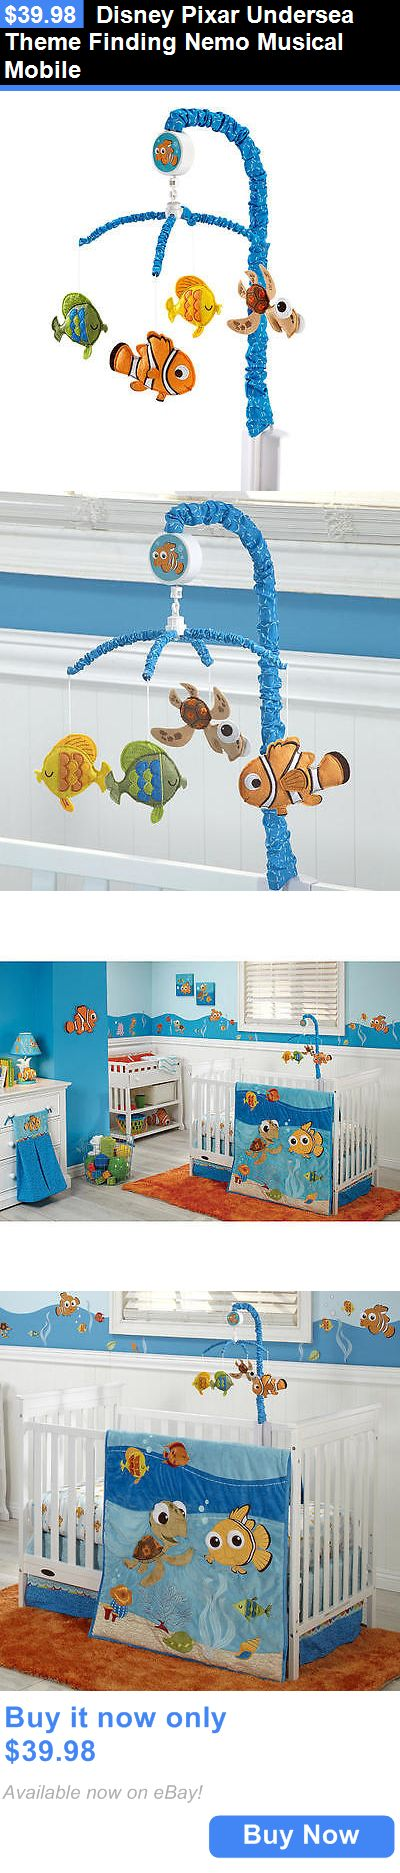 Baby Nursery: Disney Pixar Undersea Theme Finding Nemo Musical Mobile BUY IT NOW ONLY: $39.98